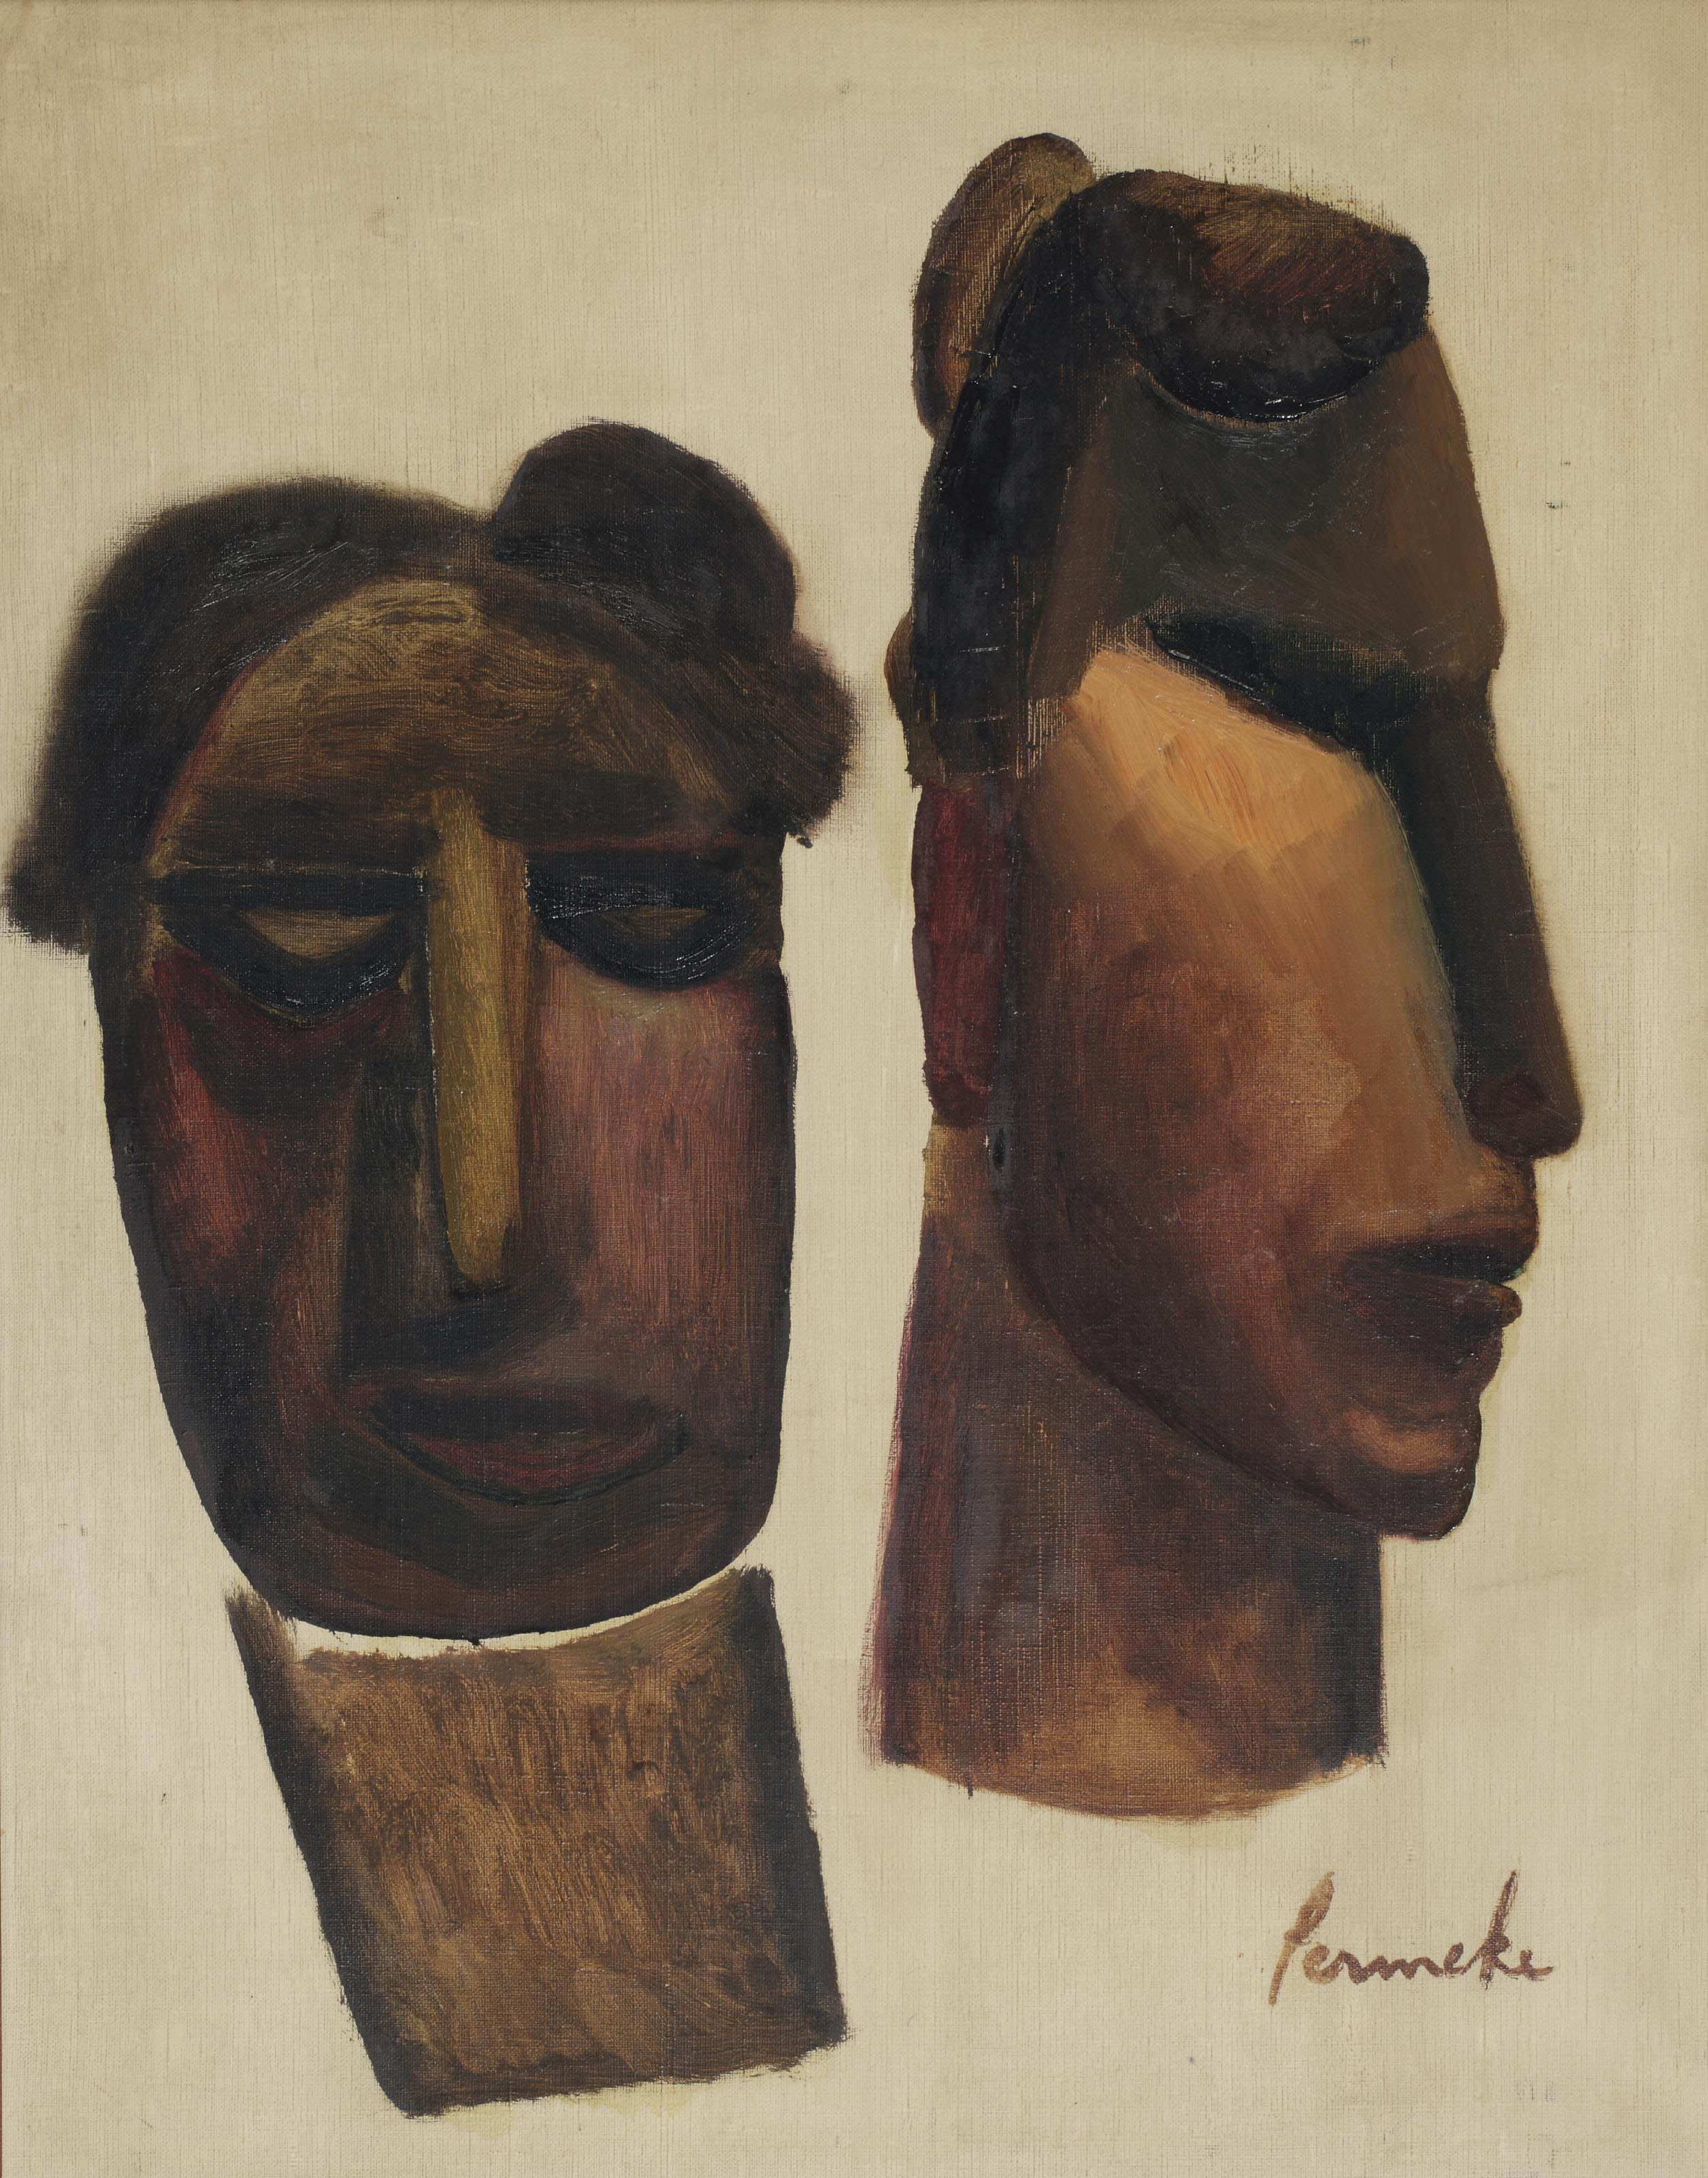 Primitive heads